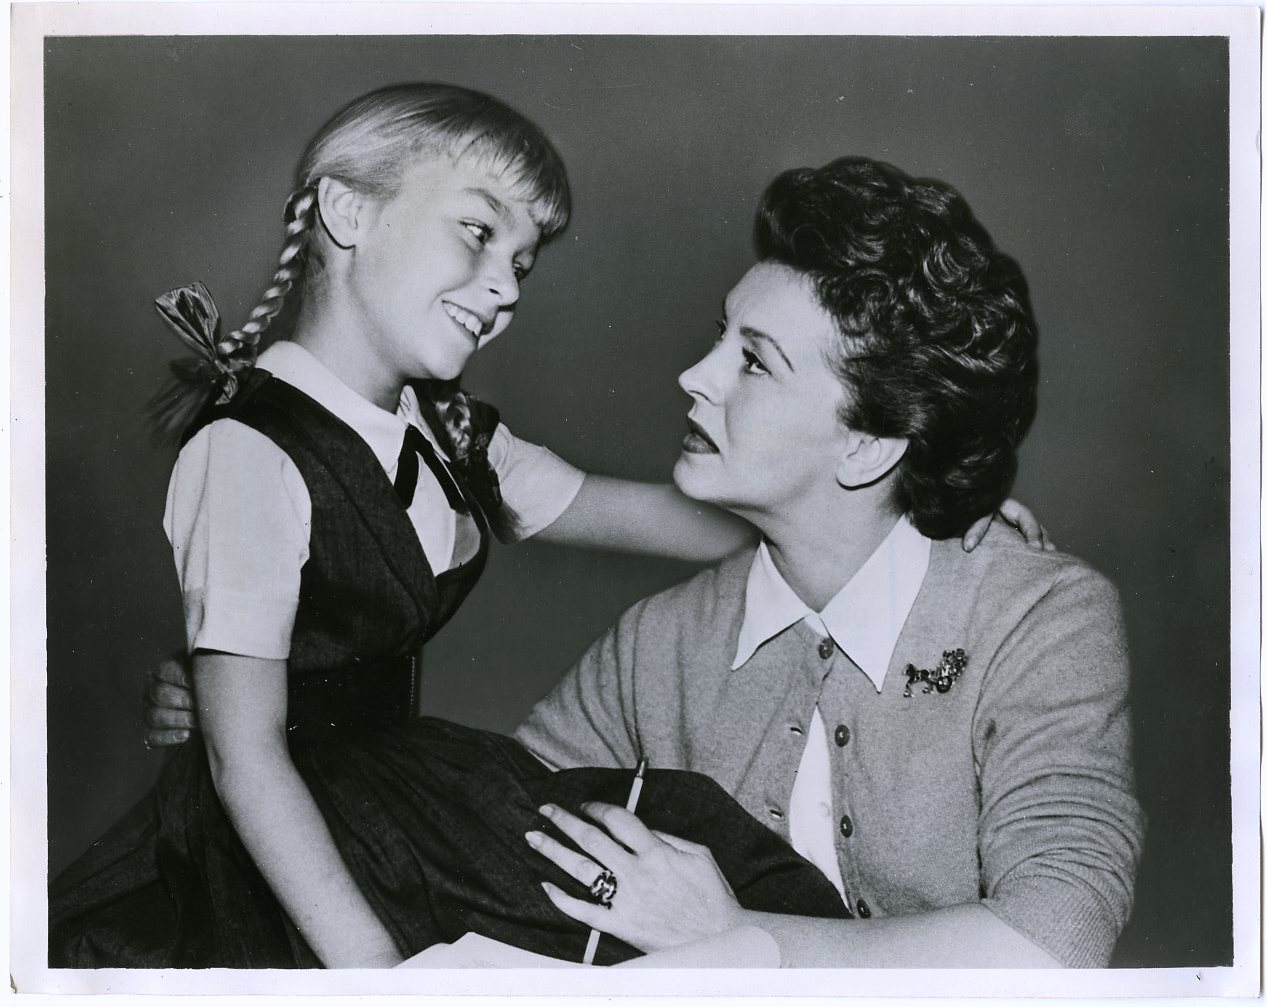 Nancy Kelly from The Bad Seed